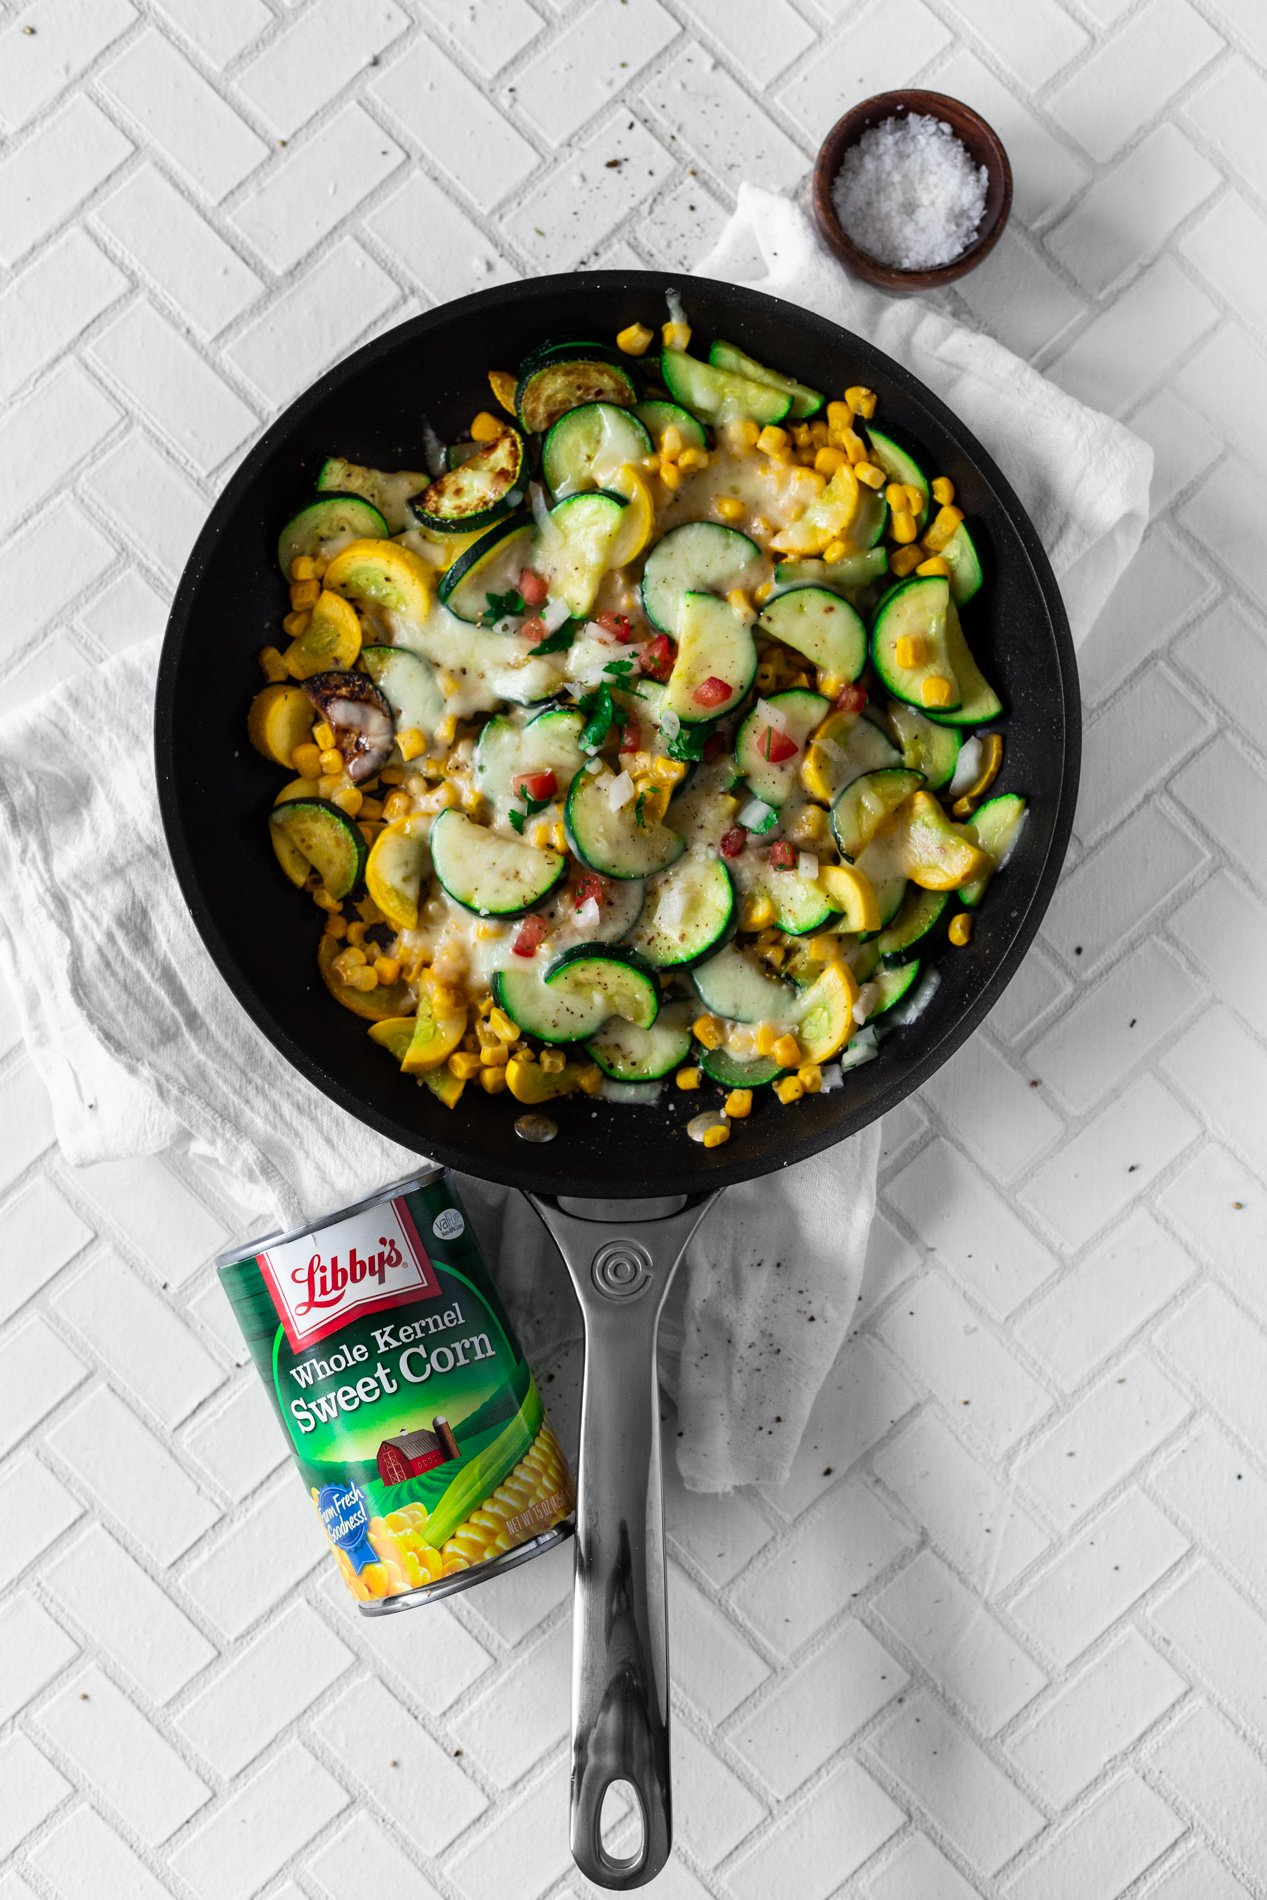 overhead view of a skillet with calabacitas con elote, or zucchini and corn, topped with cheese, with a can of corn toward the bottom of the image